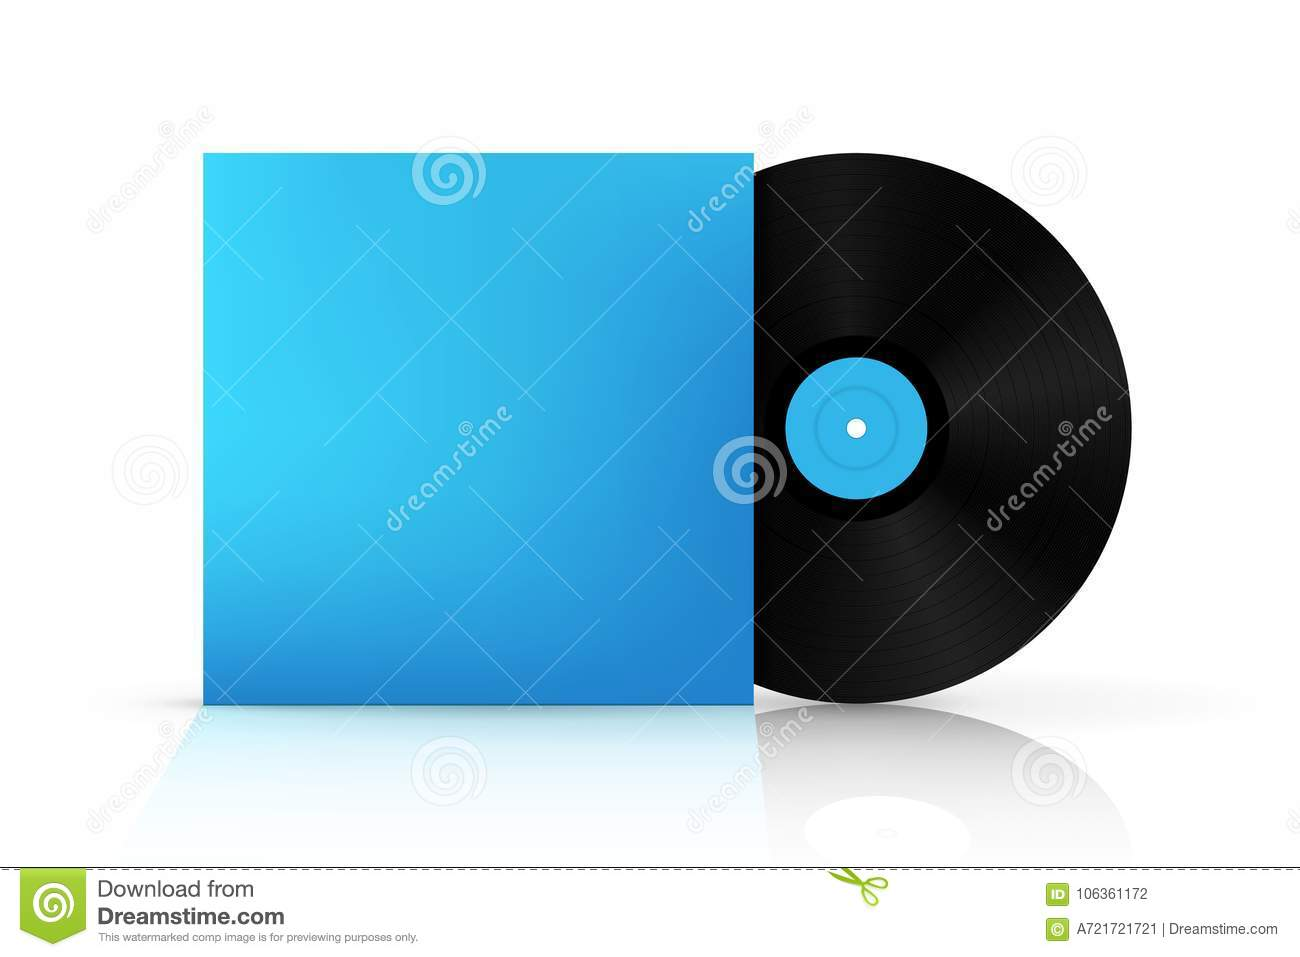 Creative illustration of realistic vinyl record disk in paper case creative illustration of realistic vinyl record disk in paper case box isolated on background front view art design blank lp music cover mockup template maxwellsz